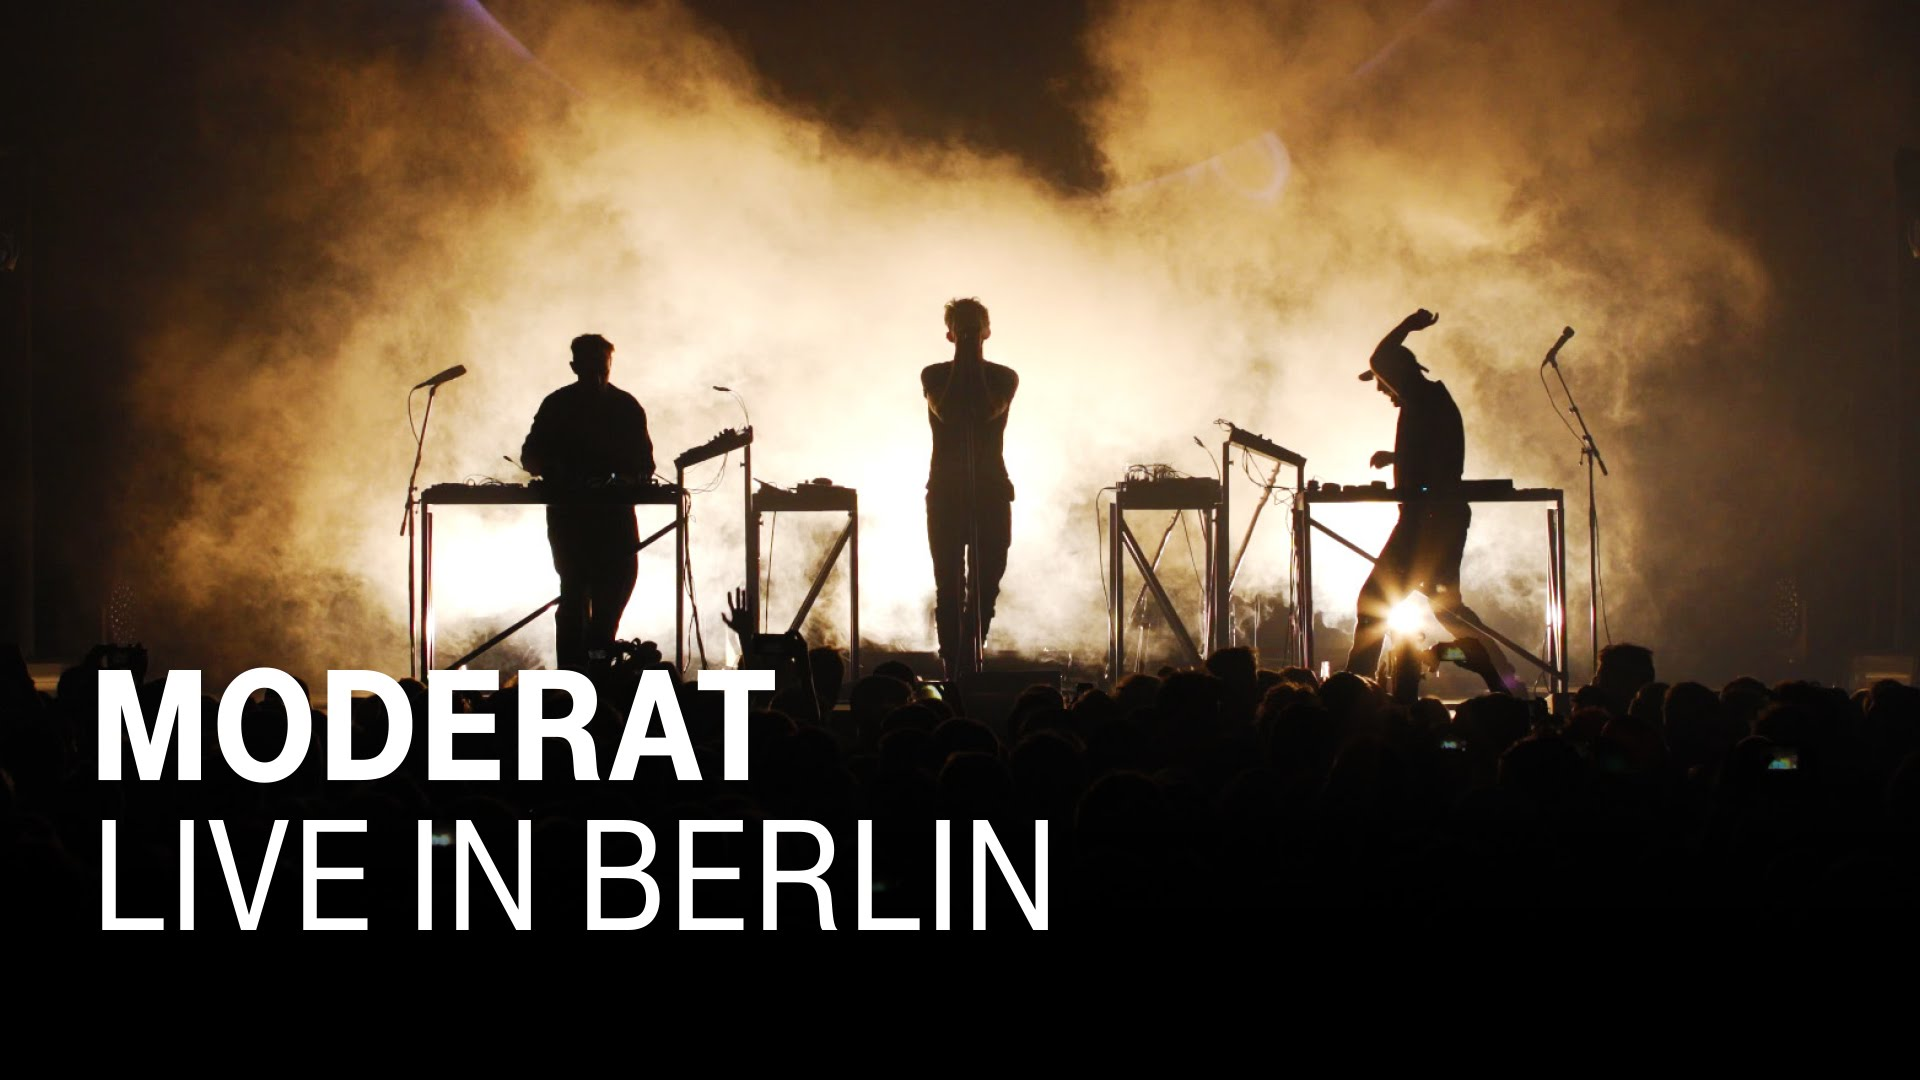 Best Electronic Albums 2020 Moderat 'Live' and 5 other classic live electronic albums   AXS